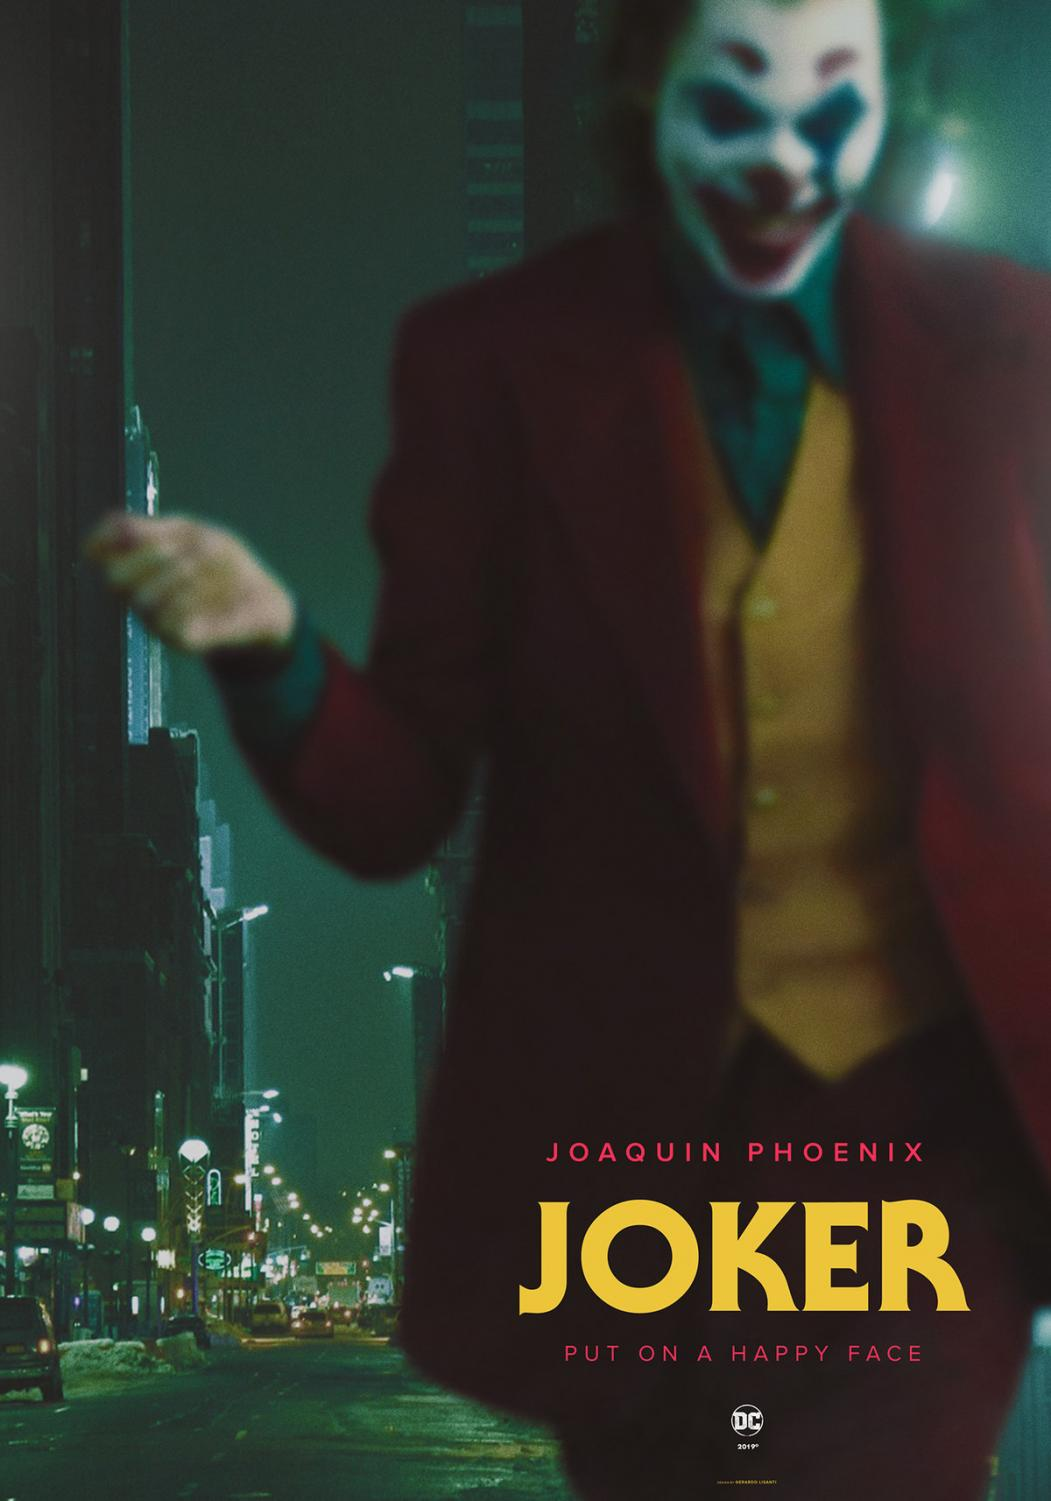 A fanart take on Joaquin Phoenix's Joker. Praised by many fans with high ratings. Via creative commons.